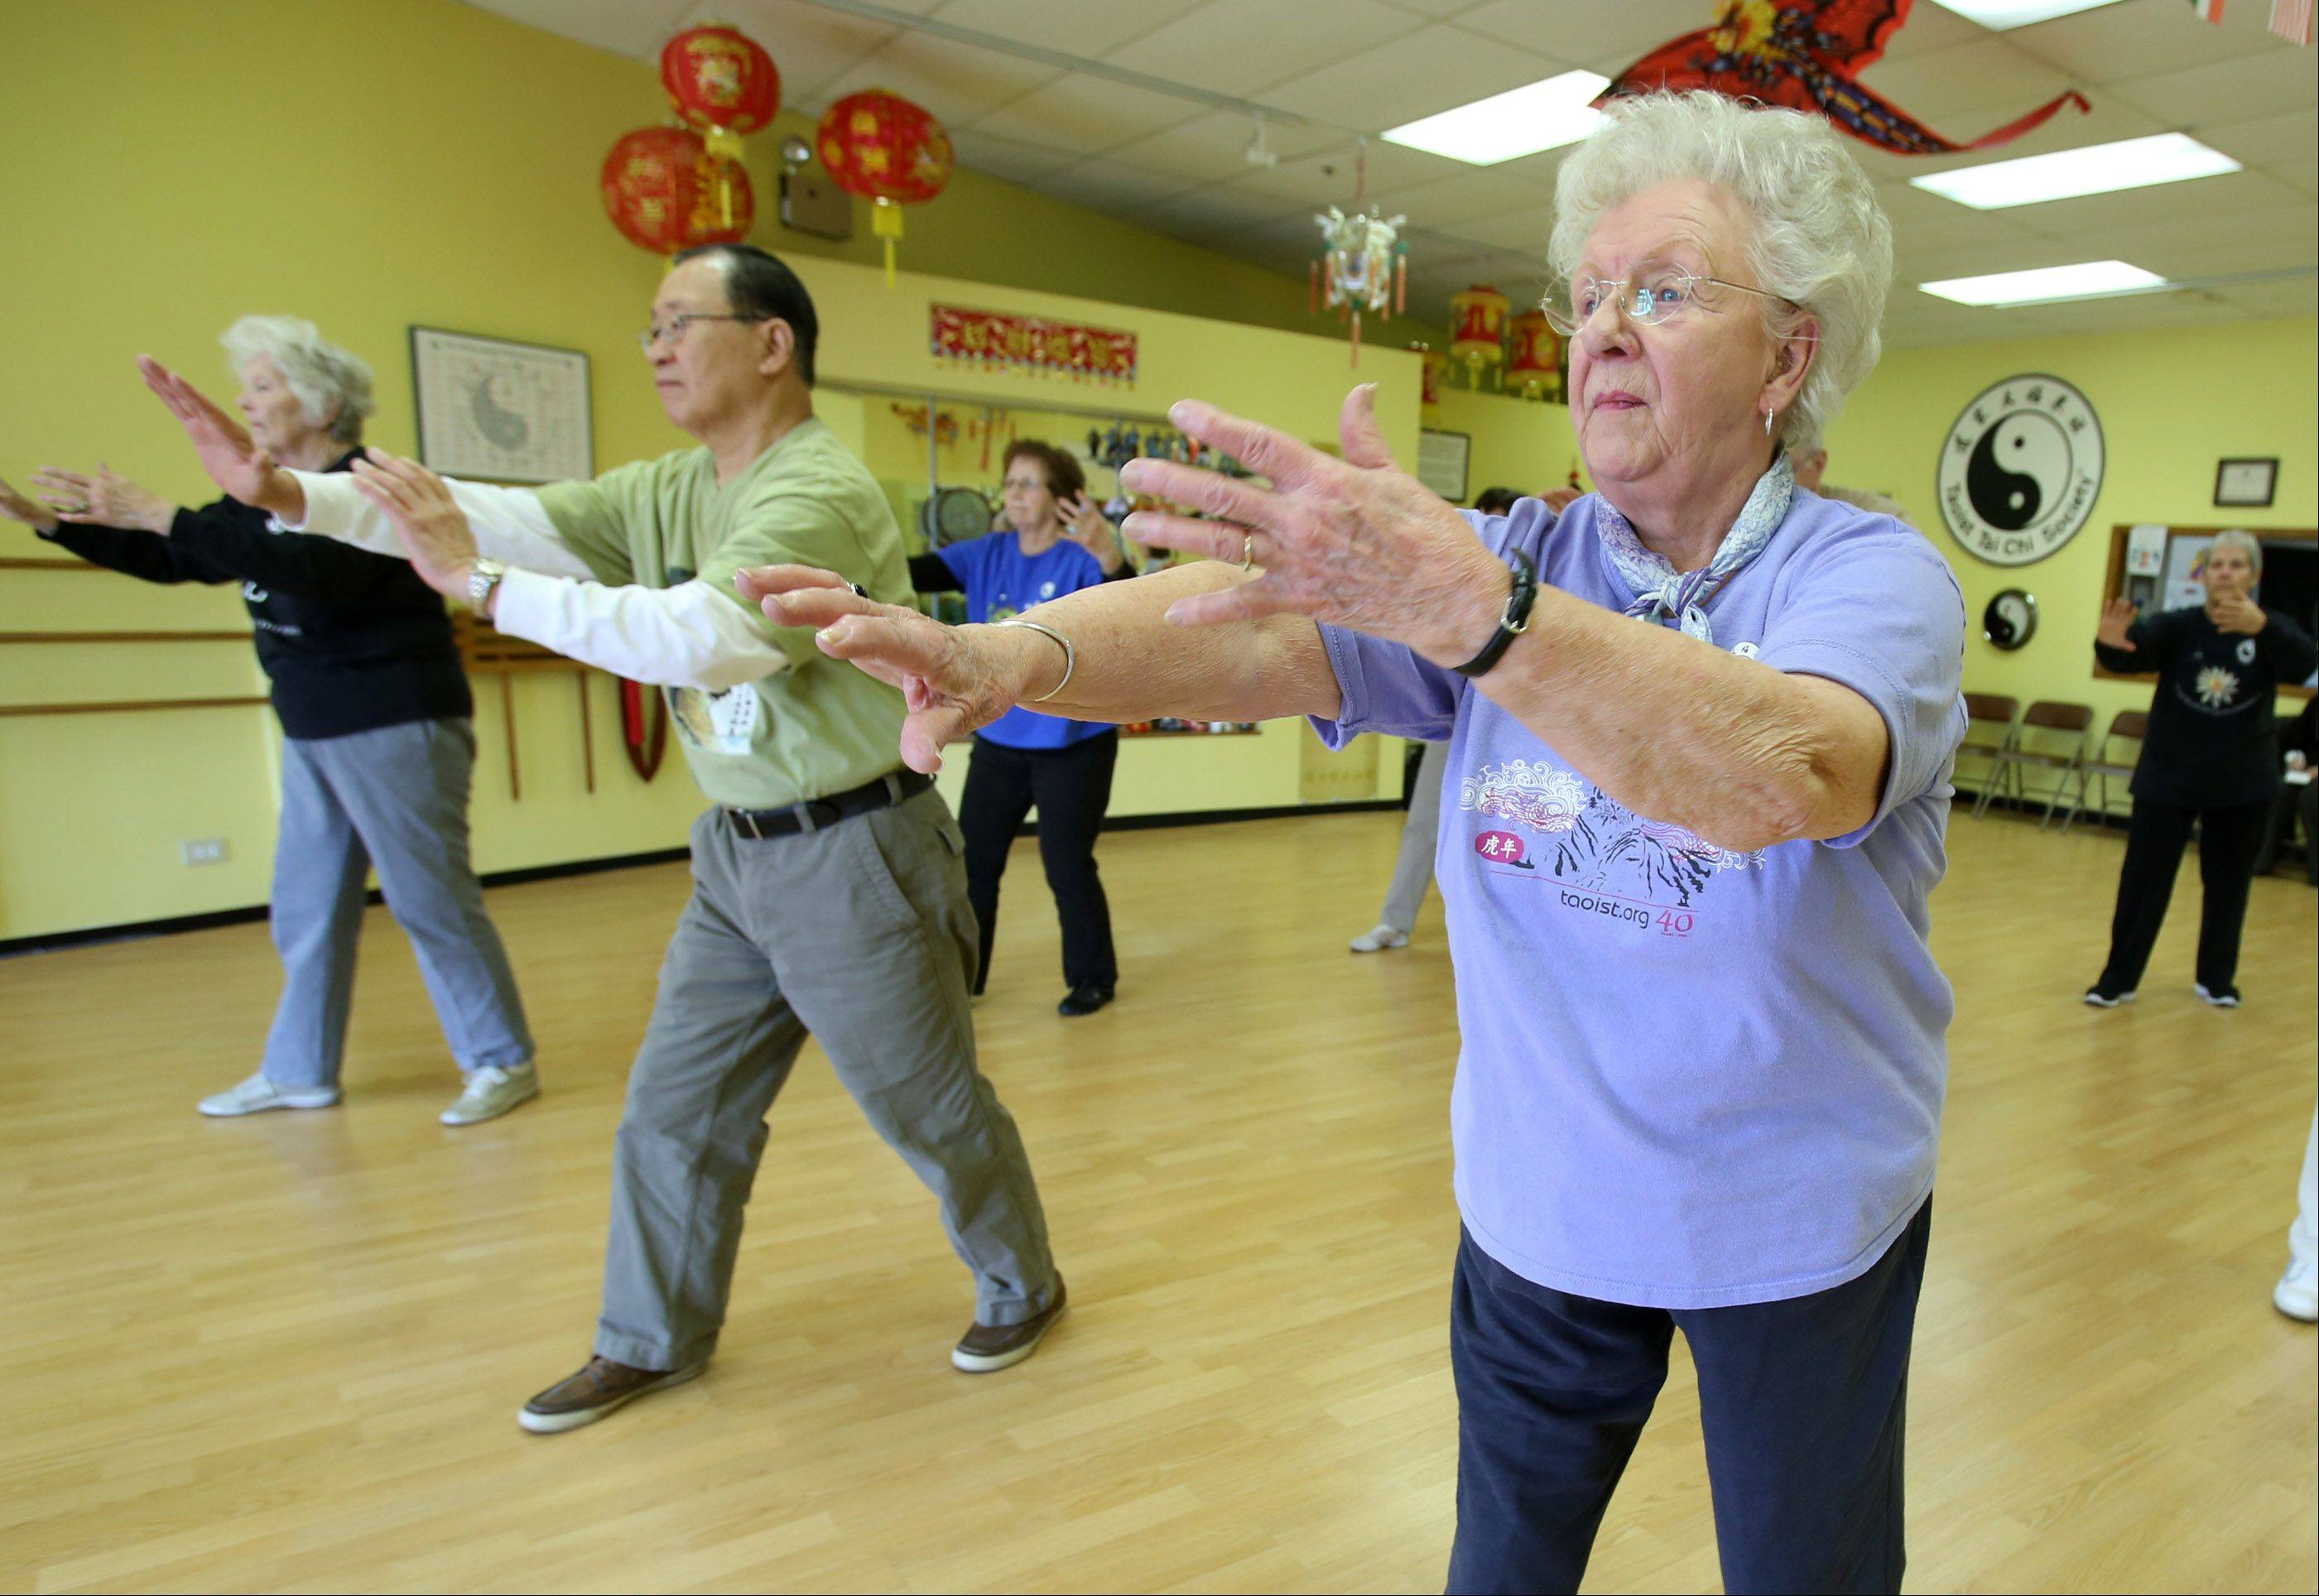 Maxine Kitts, of Glenview, leads a class at the Taoist Tai Chi Center.